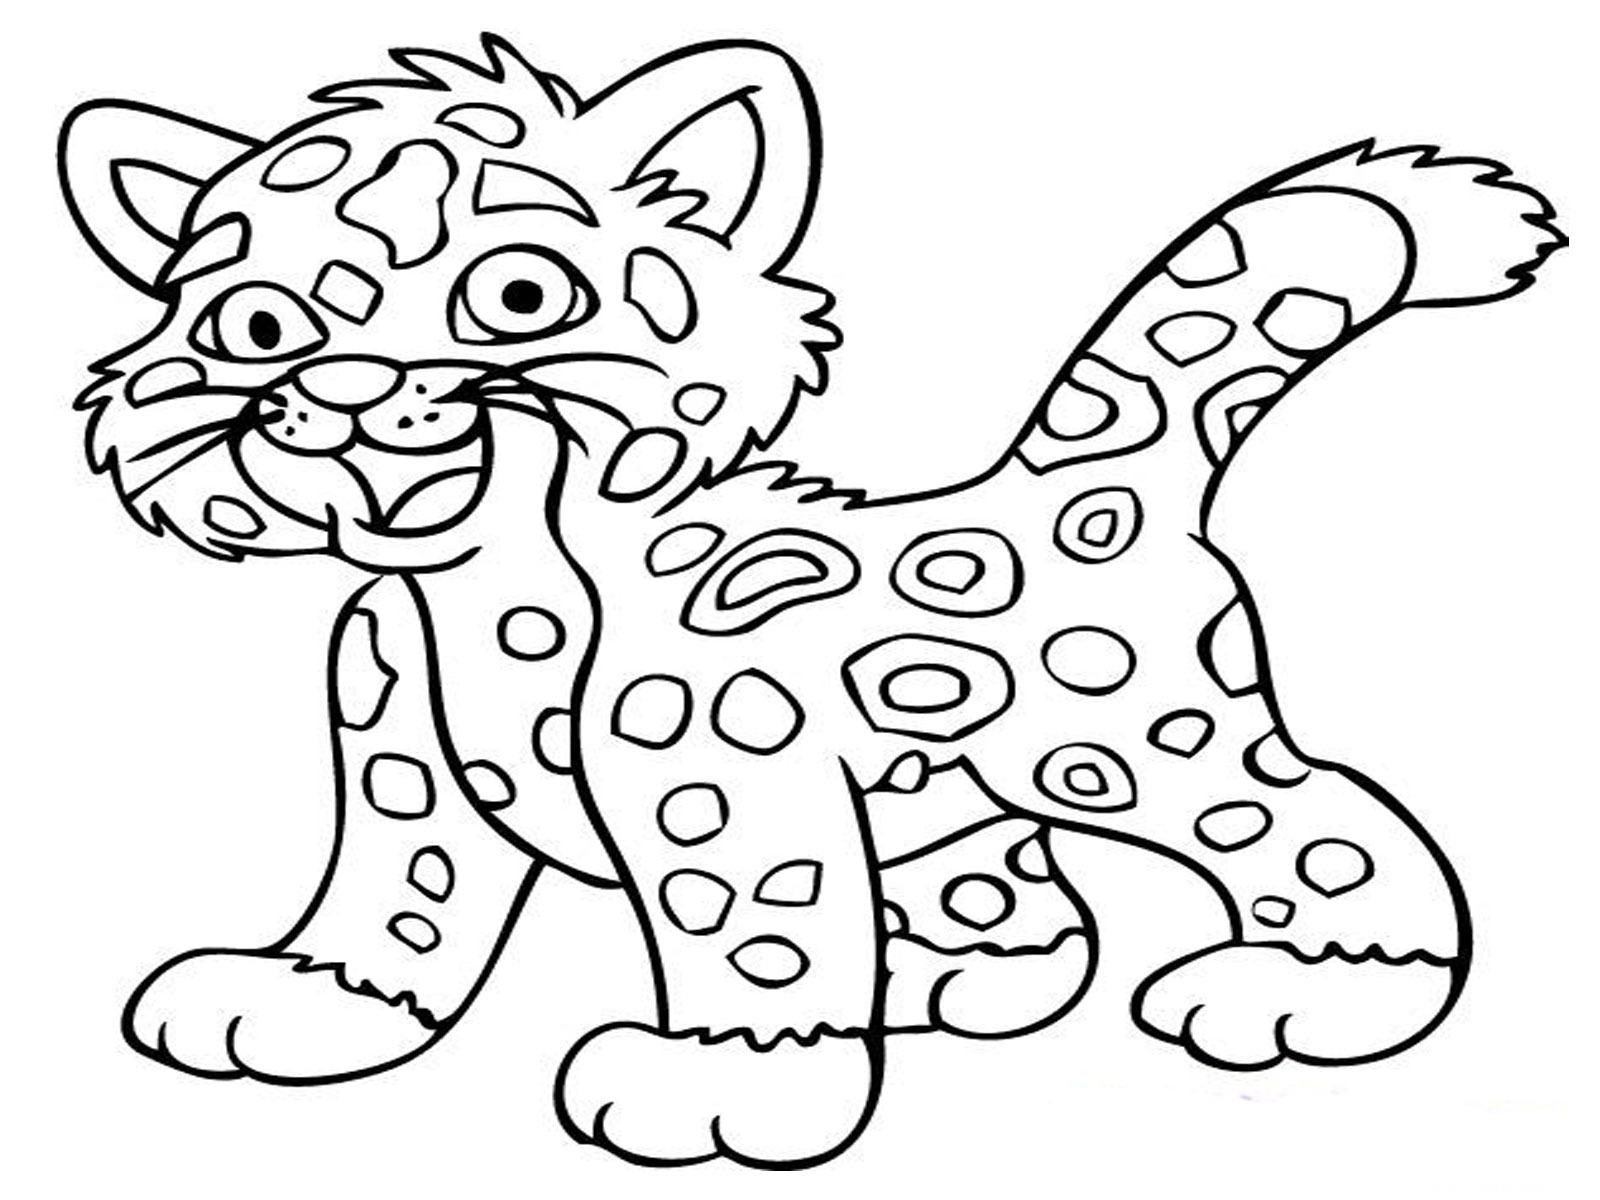 1600x1200 Coloring Pages Cool Draw Easy Animals